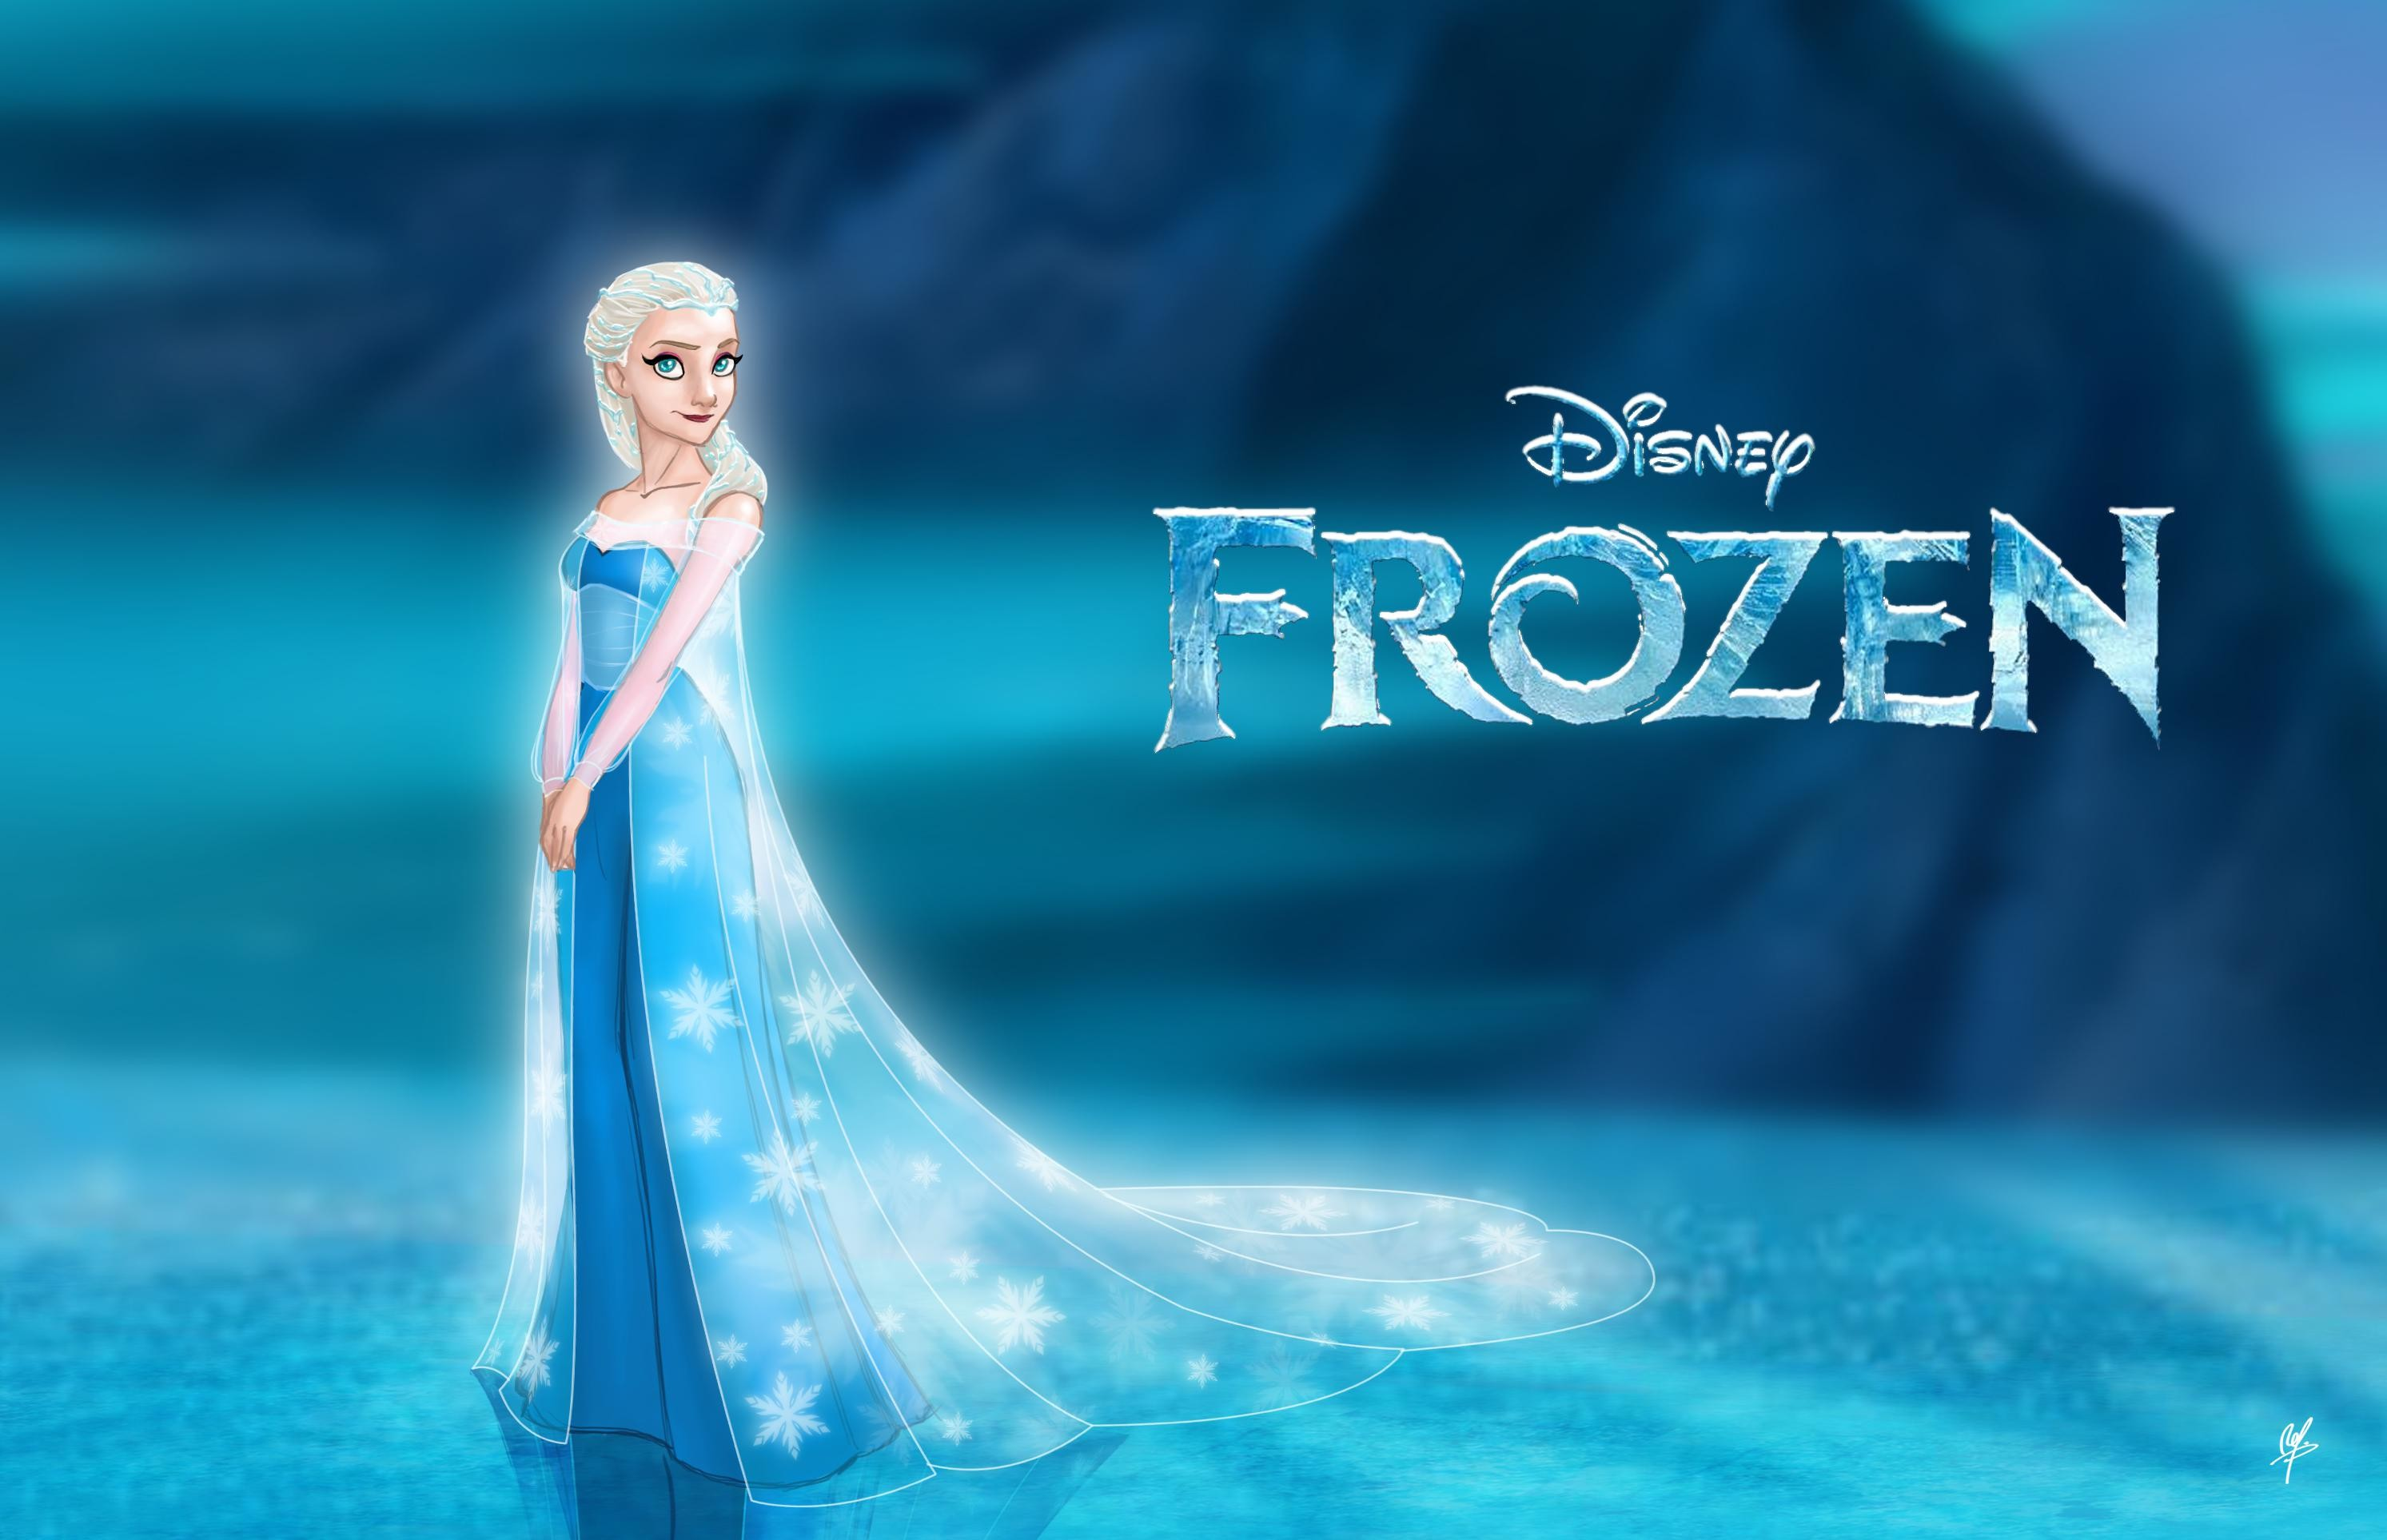 Res: 2986x1927, Elsa ice queen hd frozen wallpaper,elsa HD wallpaper,queen HD .